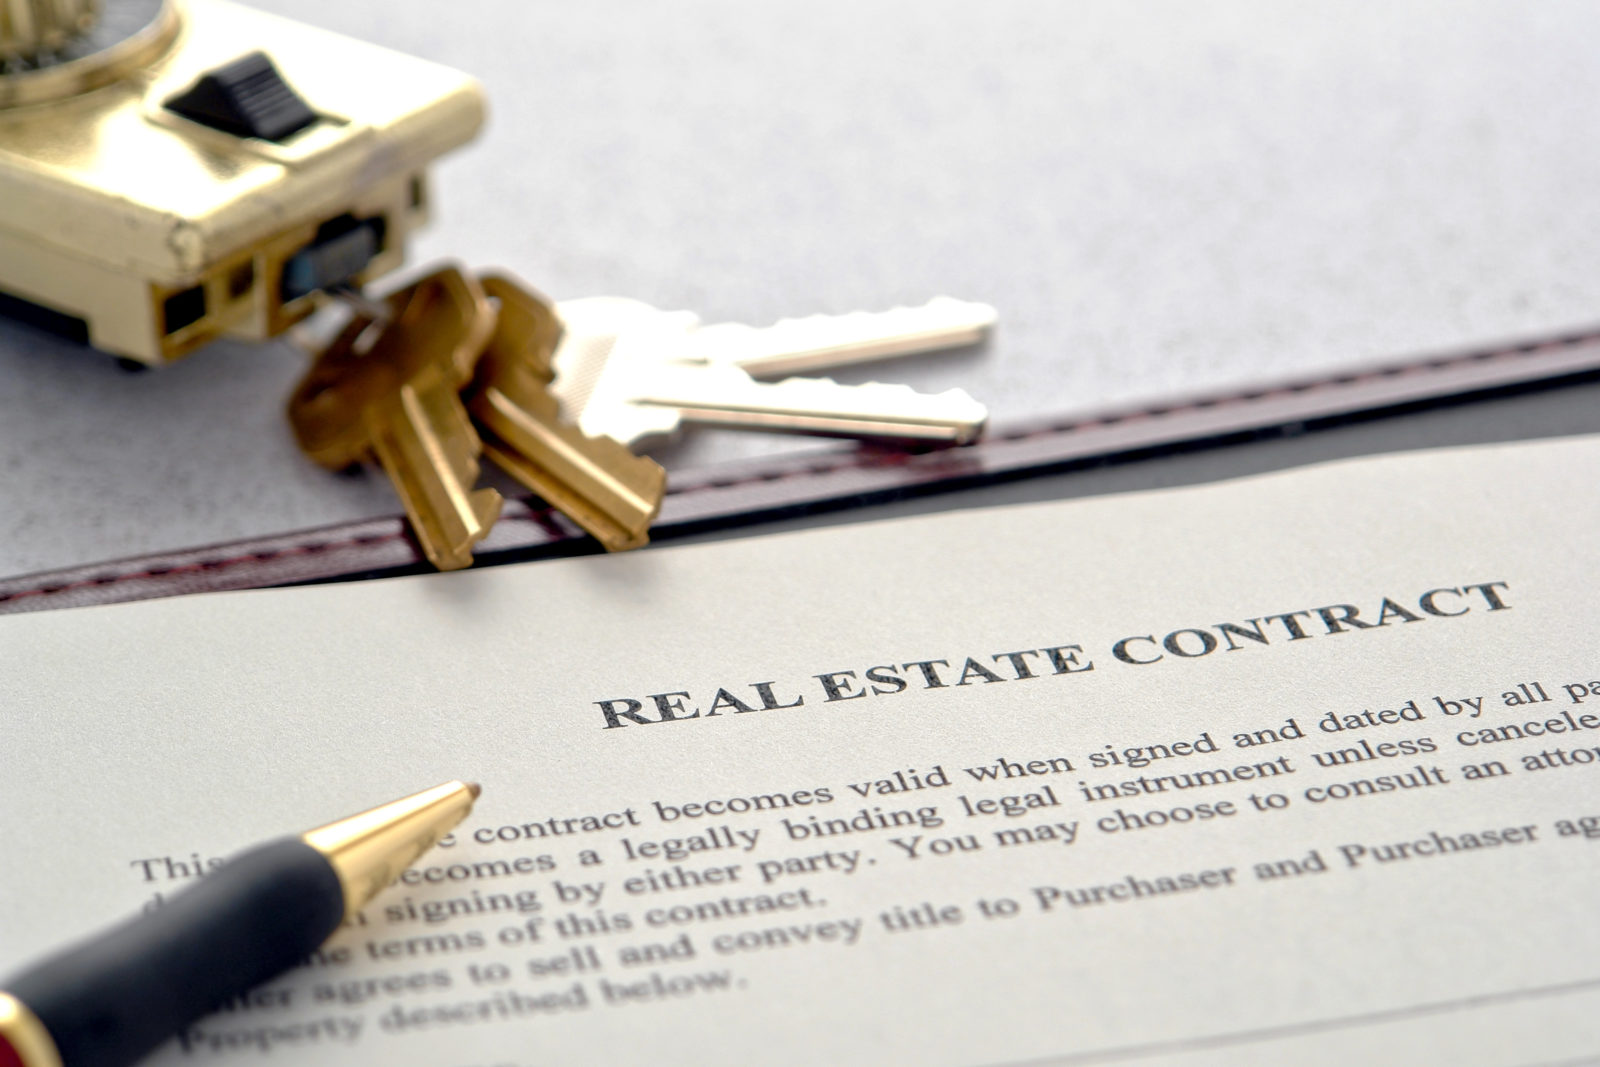 Contingencies in a Real Estate Purchase Contract - Lakewood Real Estate